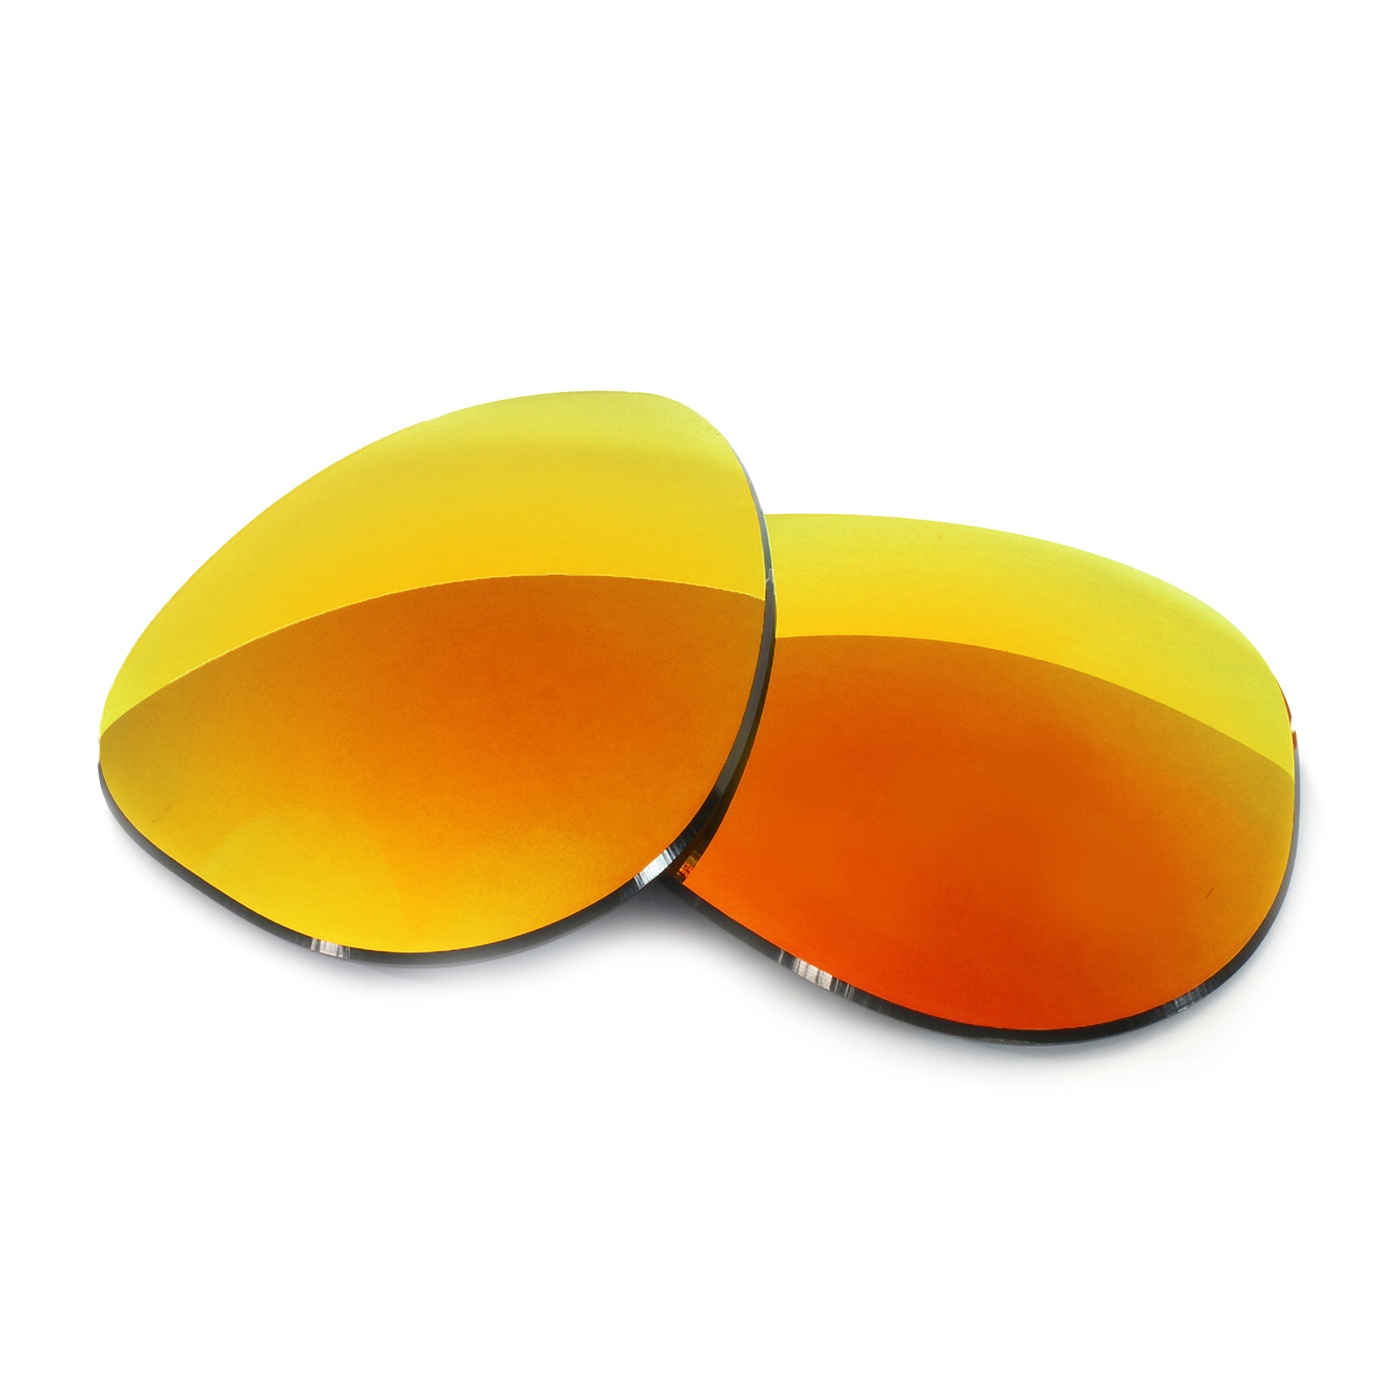 b8fdb48e924 Fuse Lenses Non-Polarized Replacement Lenses for Coach Taylor HC ...